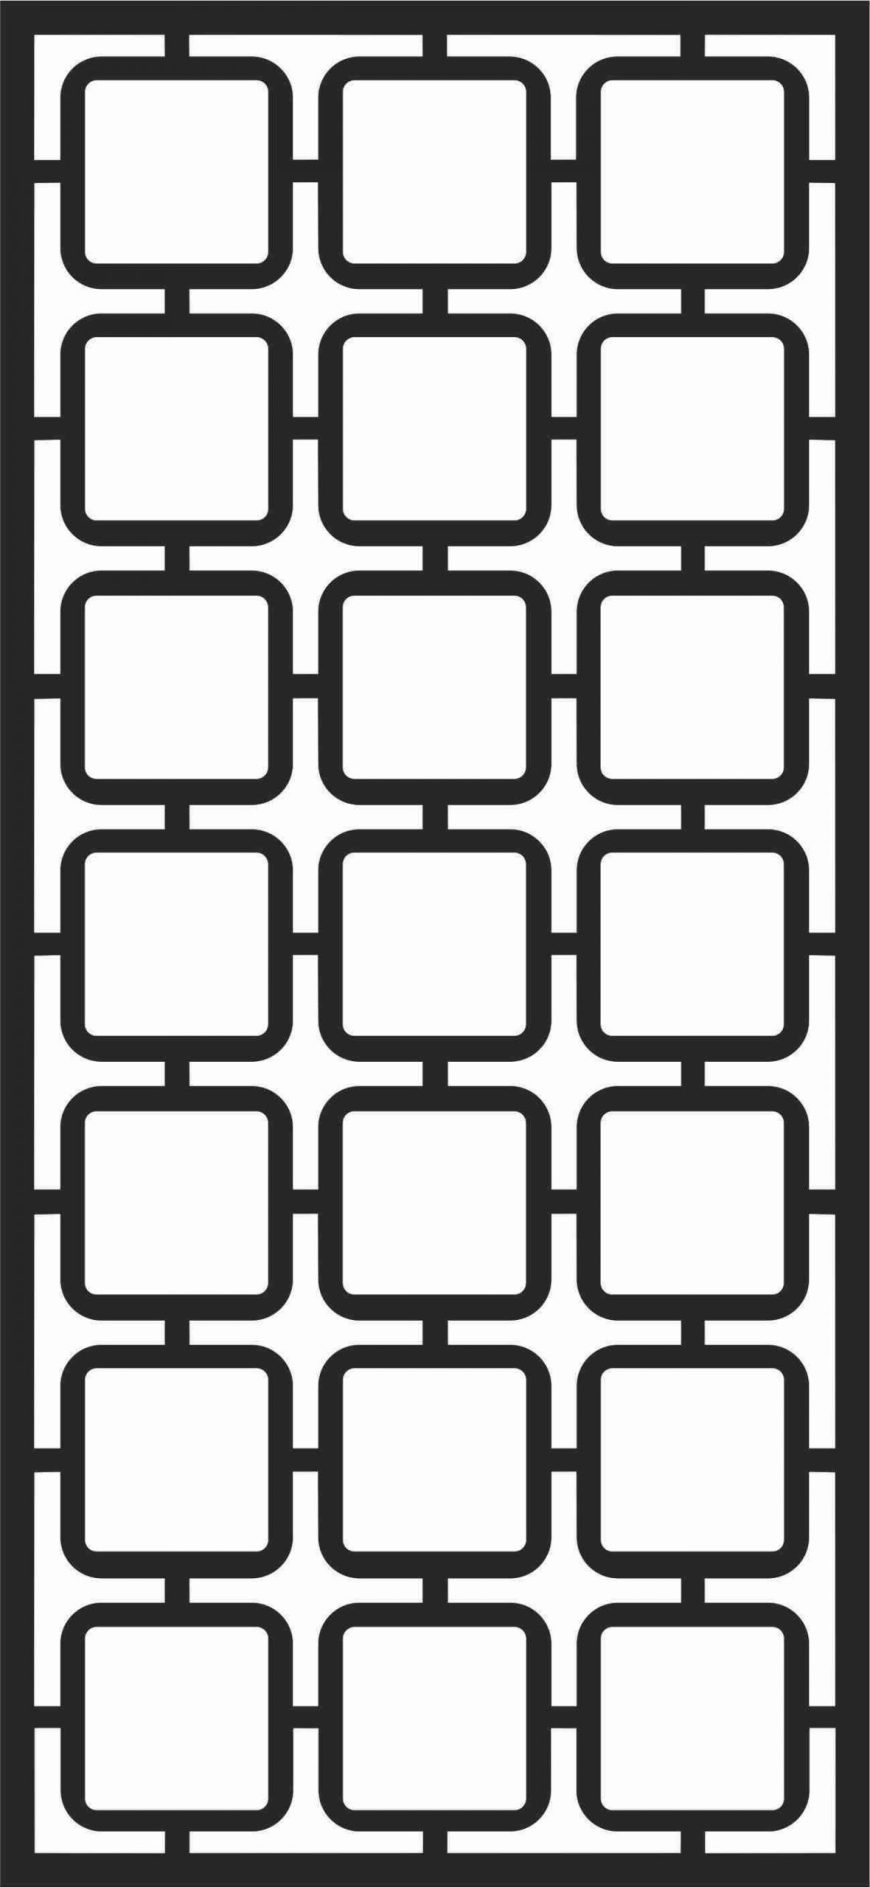 Floral Screen Patterns Design 19 Free DXF File